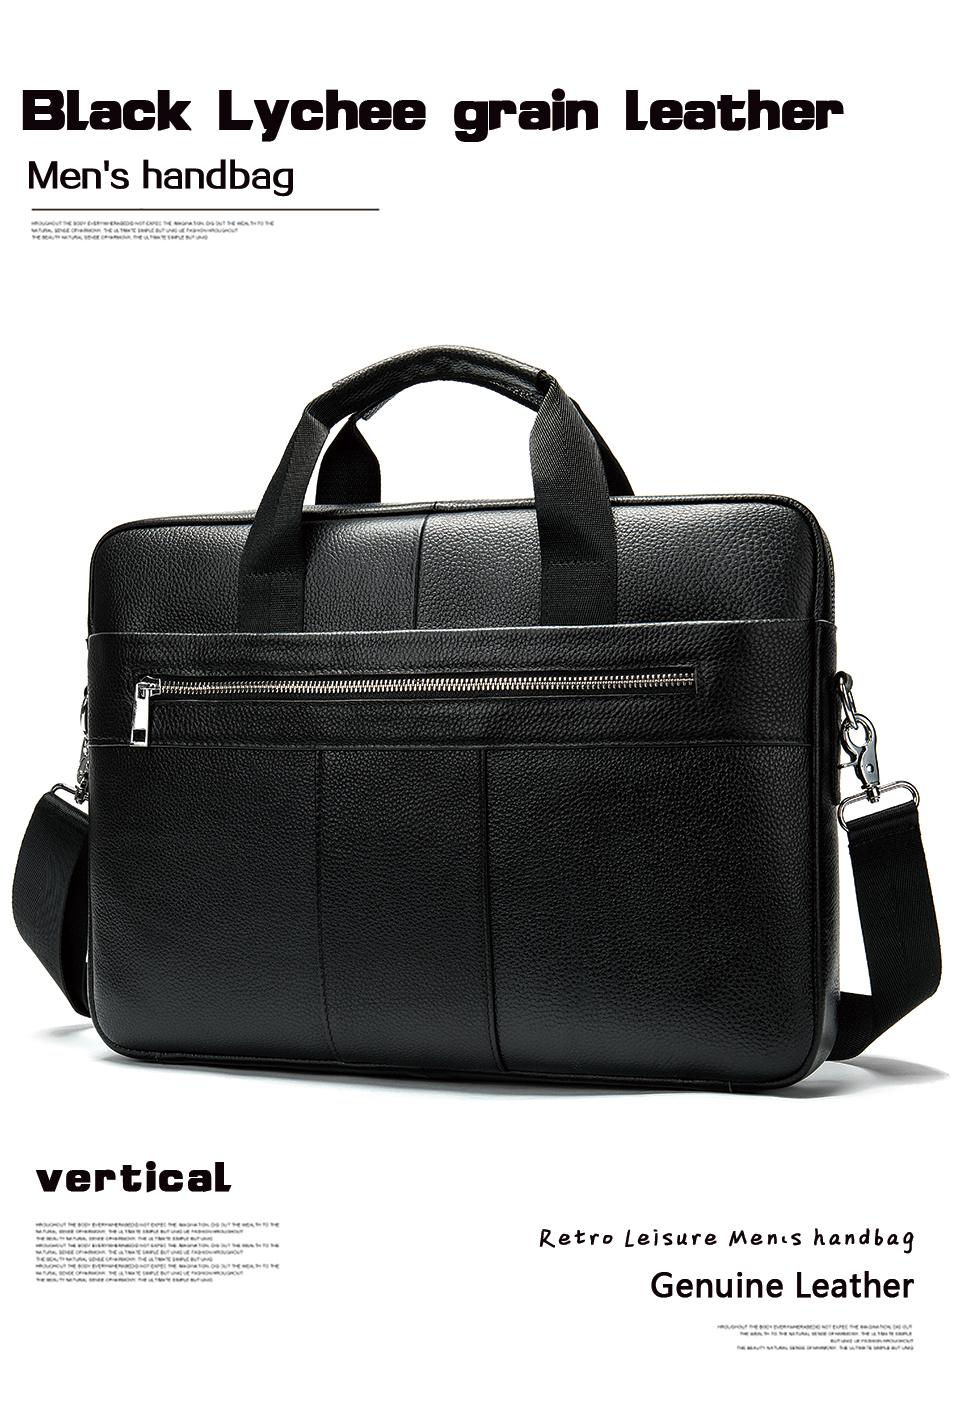 H02b684209ced461c87969fe630f09210h WESTAL Men's Briefcase Men's Bag Genuine Leather Laptop Bag Leather Computer/Office Bags for Men Document Briefcases Totes Bags